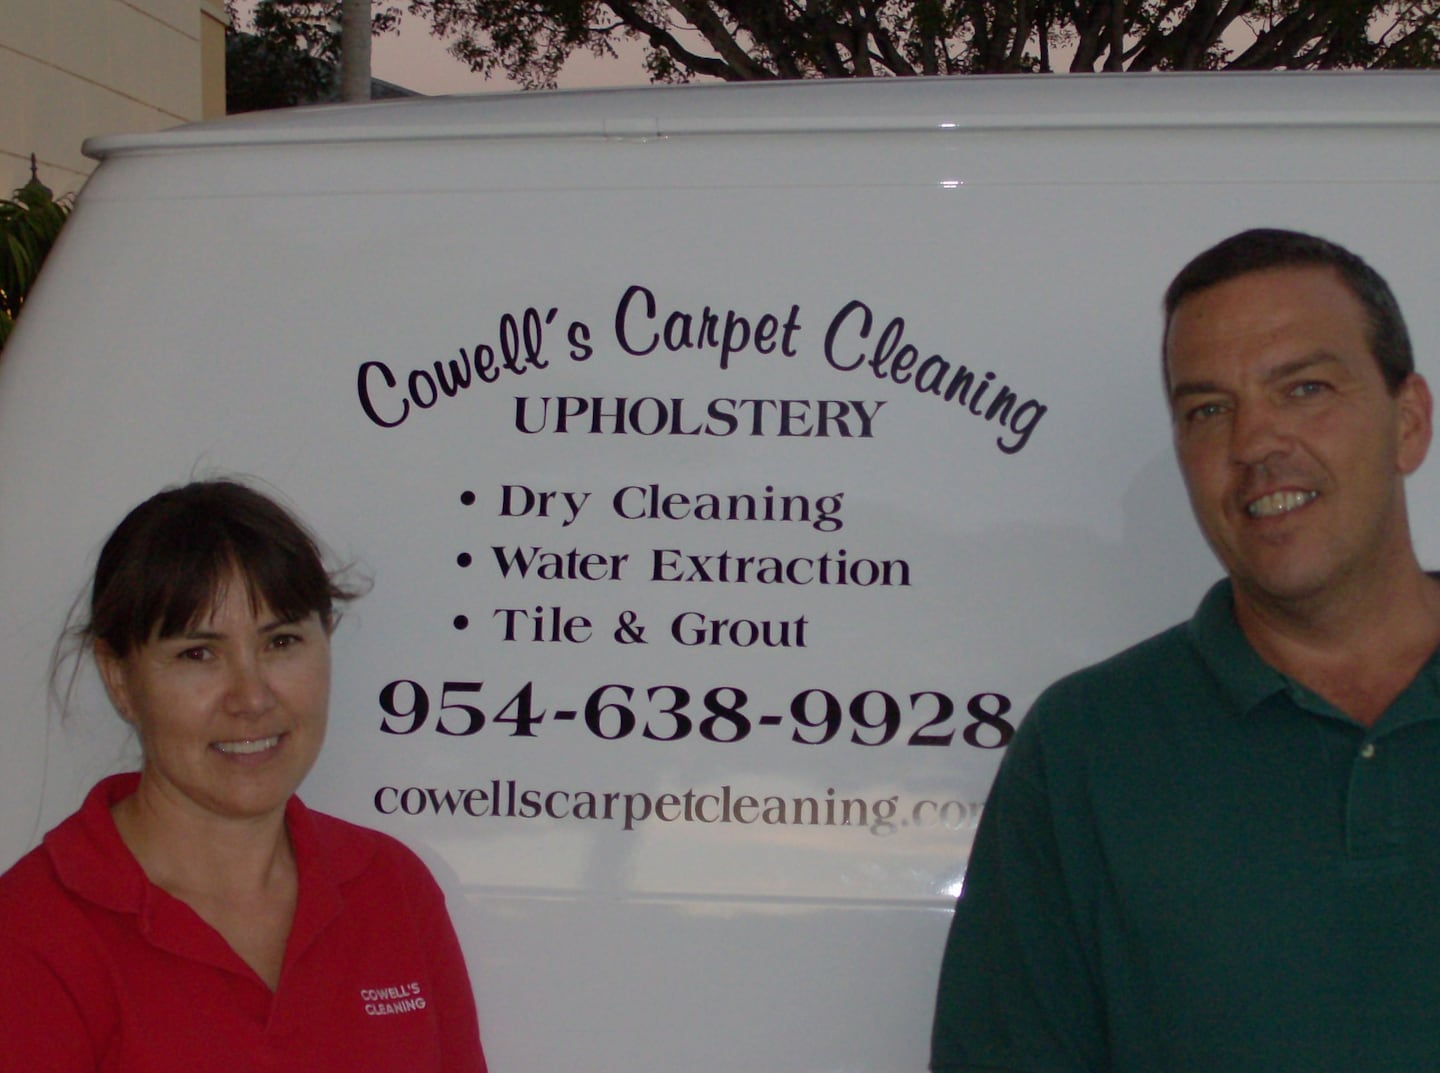 Cowell's Carpet Cleaning, Inc.